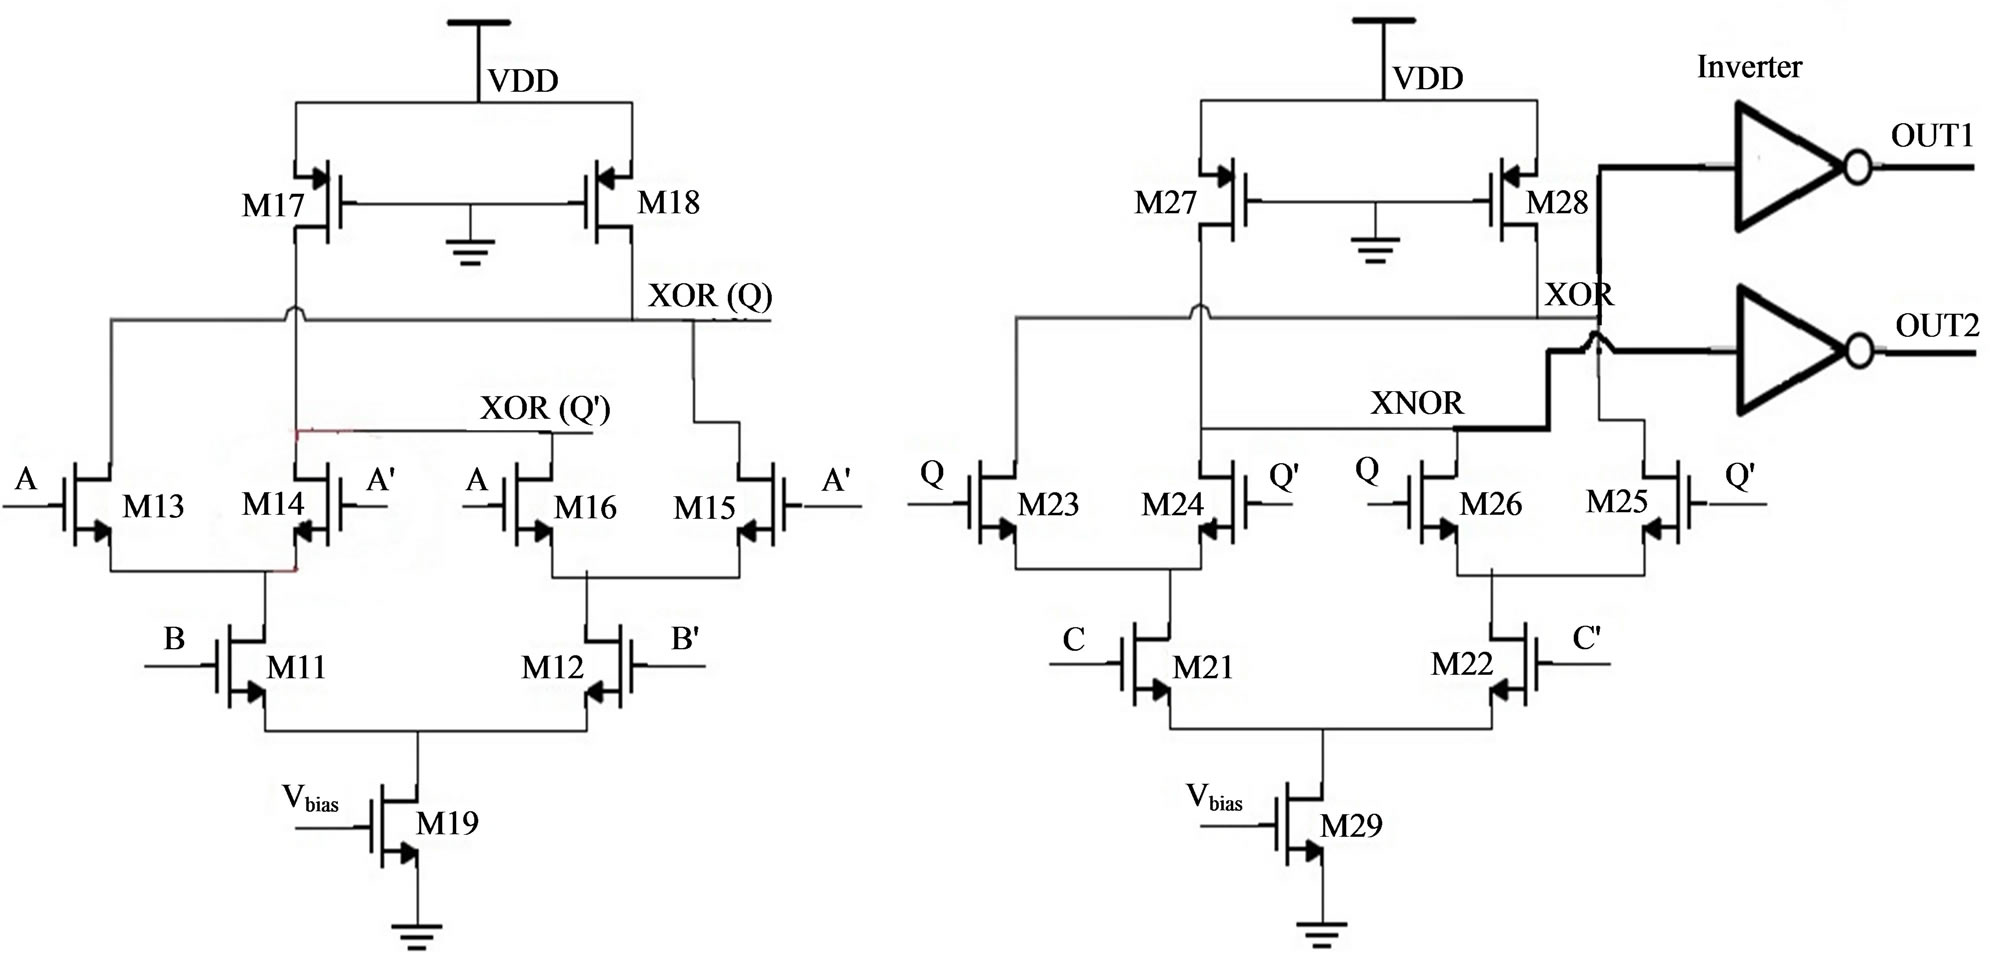 71b21cbf-48a5-4be8-9644-be39db39758e  Input Xor Gate Logic Diagram on 3 input or layout, 3 input 74151 truth table, 3 input xnor, 3 input nand gate,